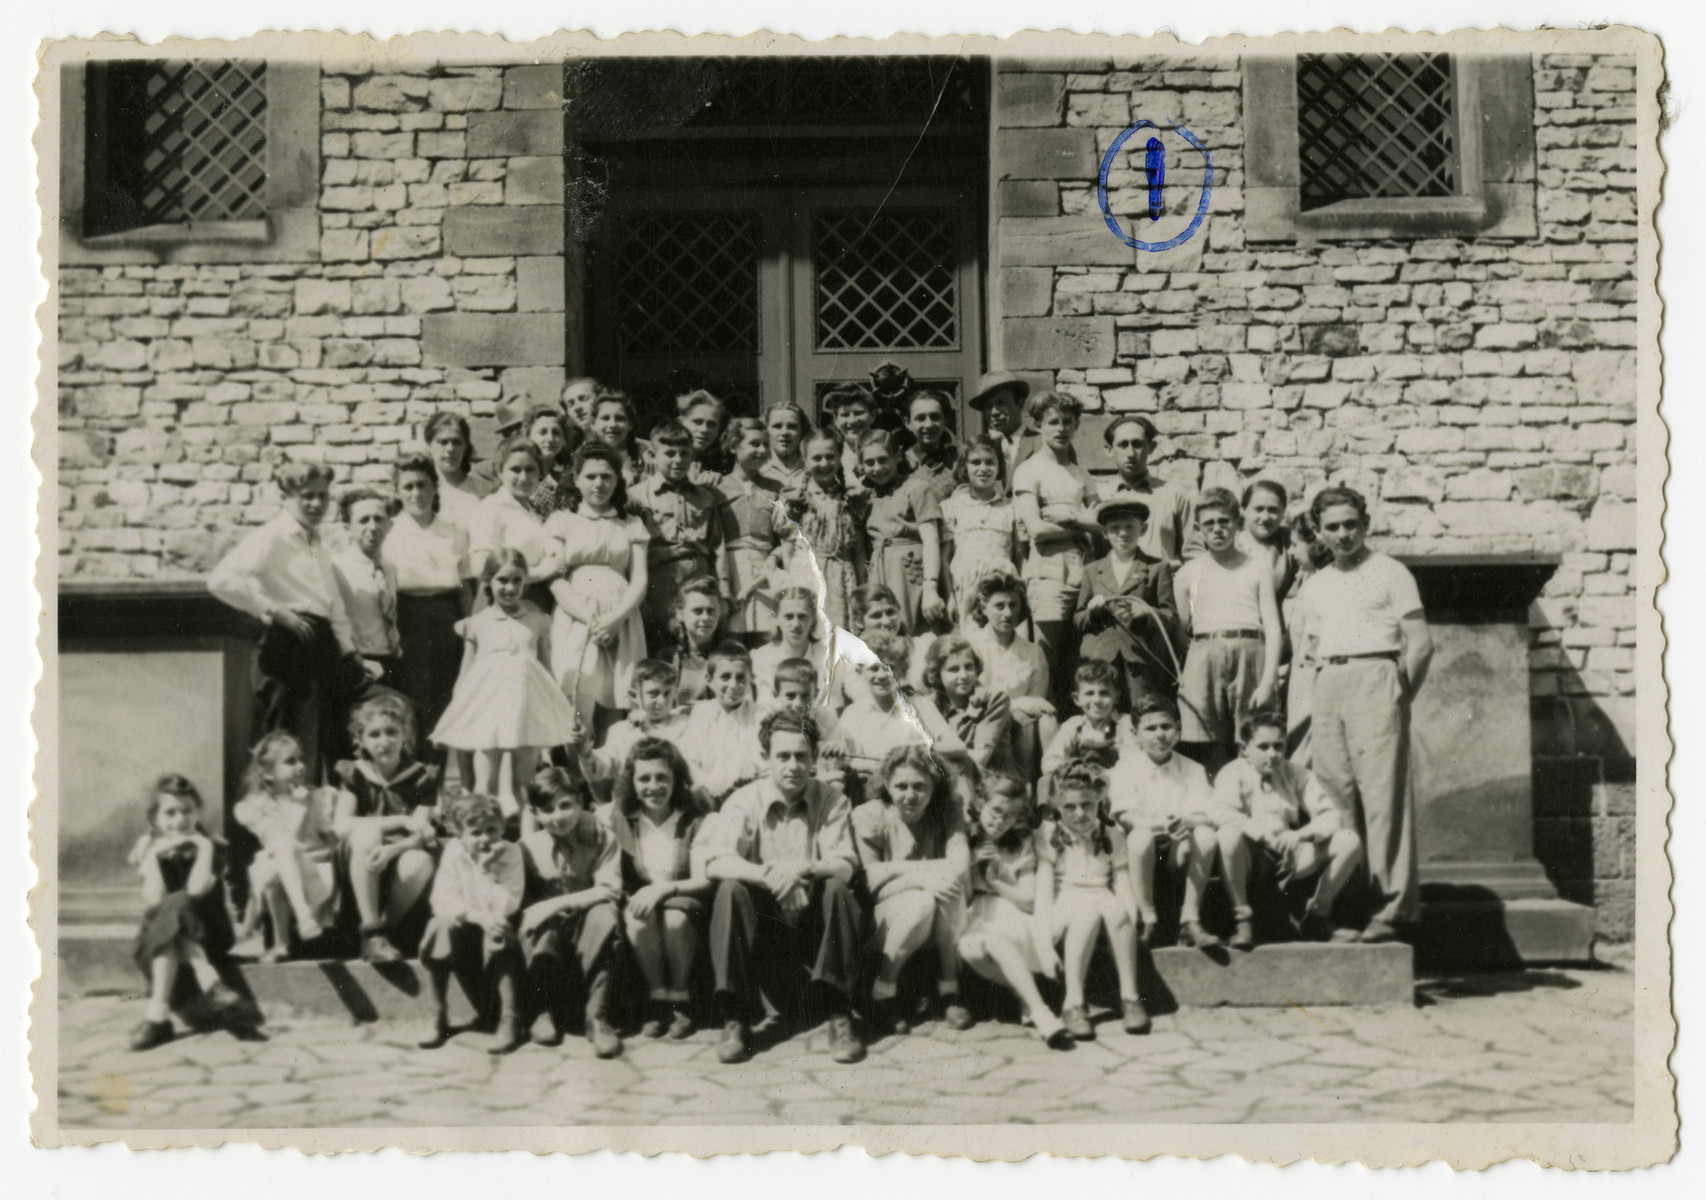 Group portrait of students and teachers of the Henrietta Szold Hebrew school in the Zeilsheim DP center.  Solomon Manischewitz, the founder and principal of the school, is seated in the middle of the front row.